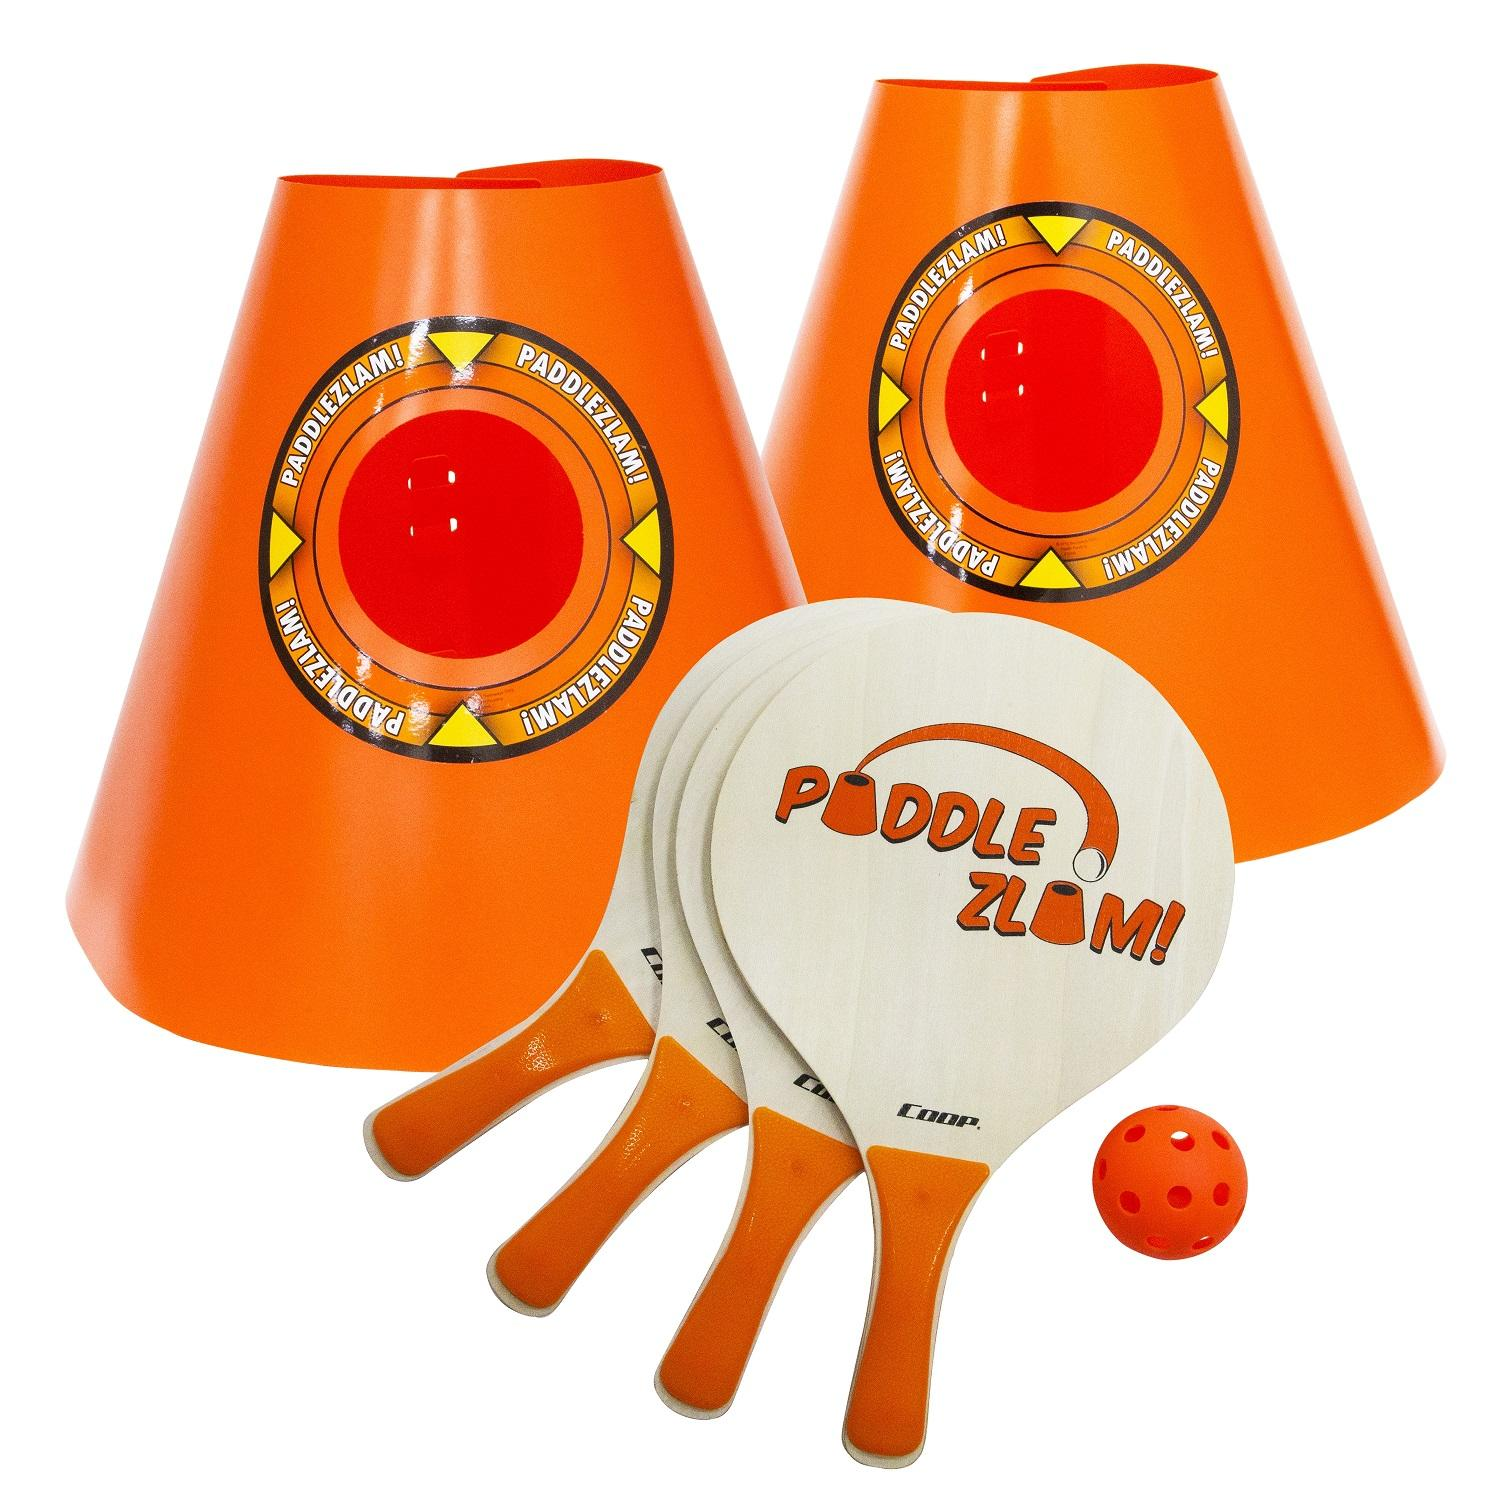 Orange Pickleball Paddle Zlam with Cones Backyard Paddle Ball Game